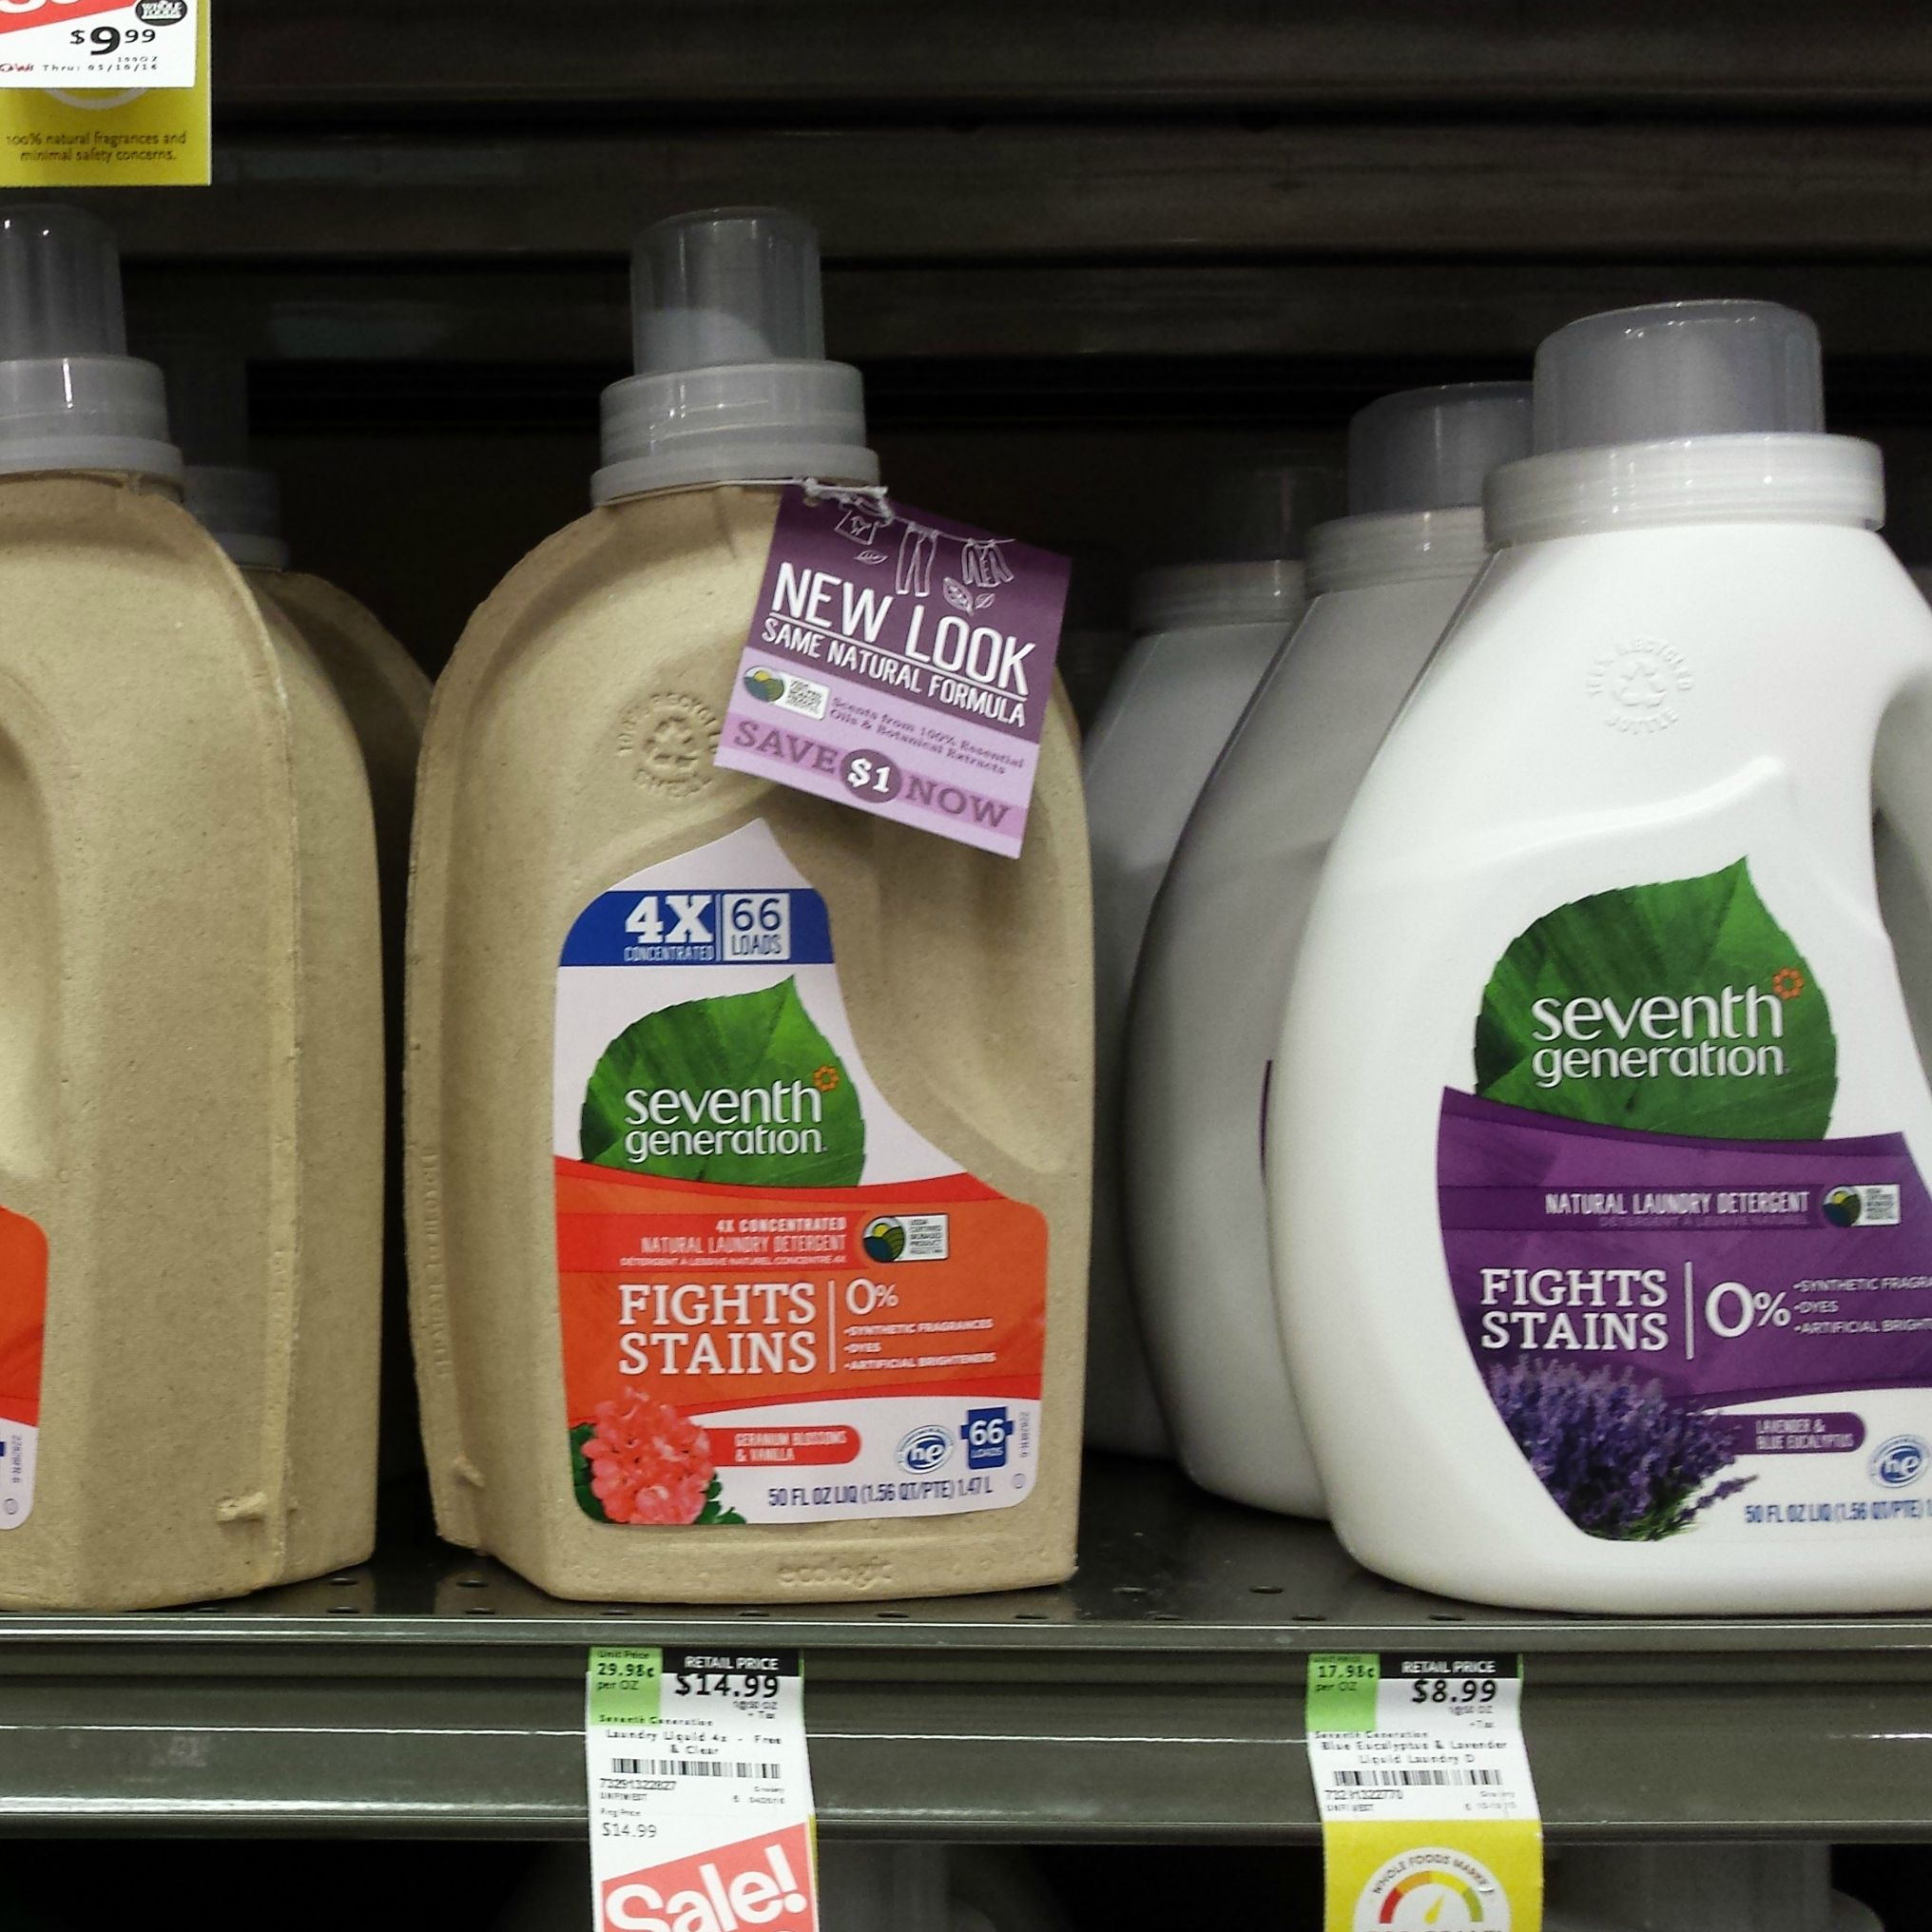 The Seventh Generation Brand Of Green Cleaning Products Has